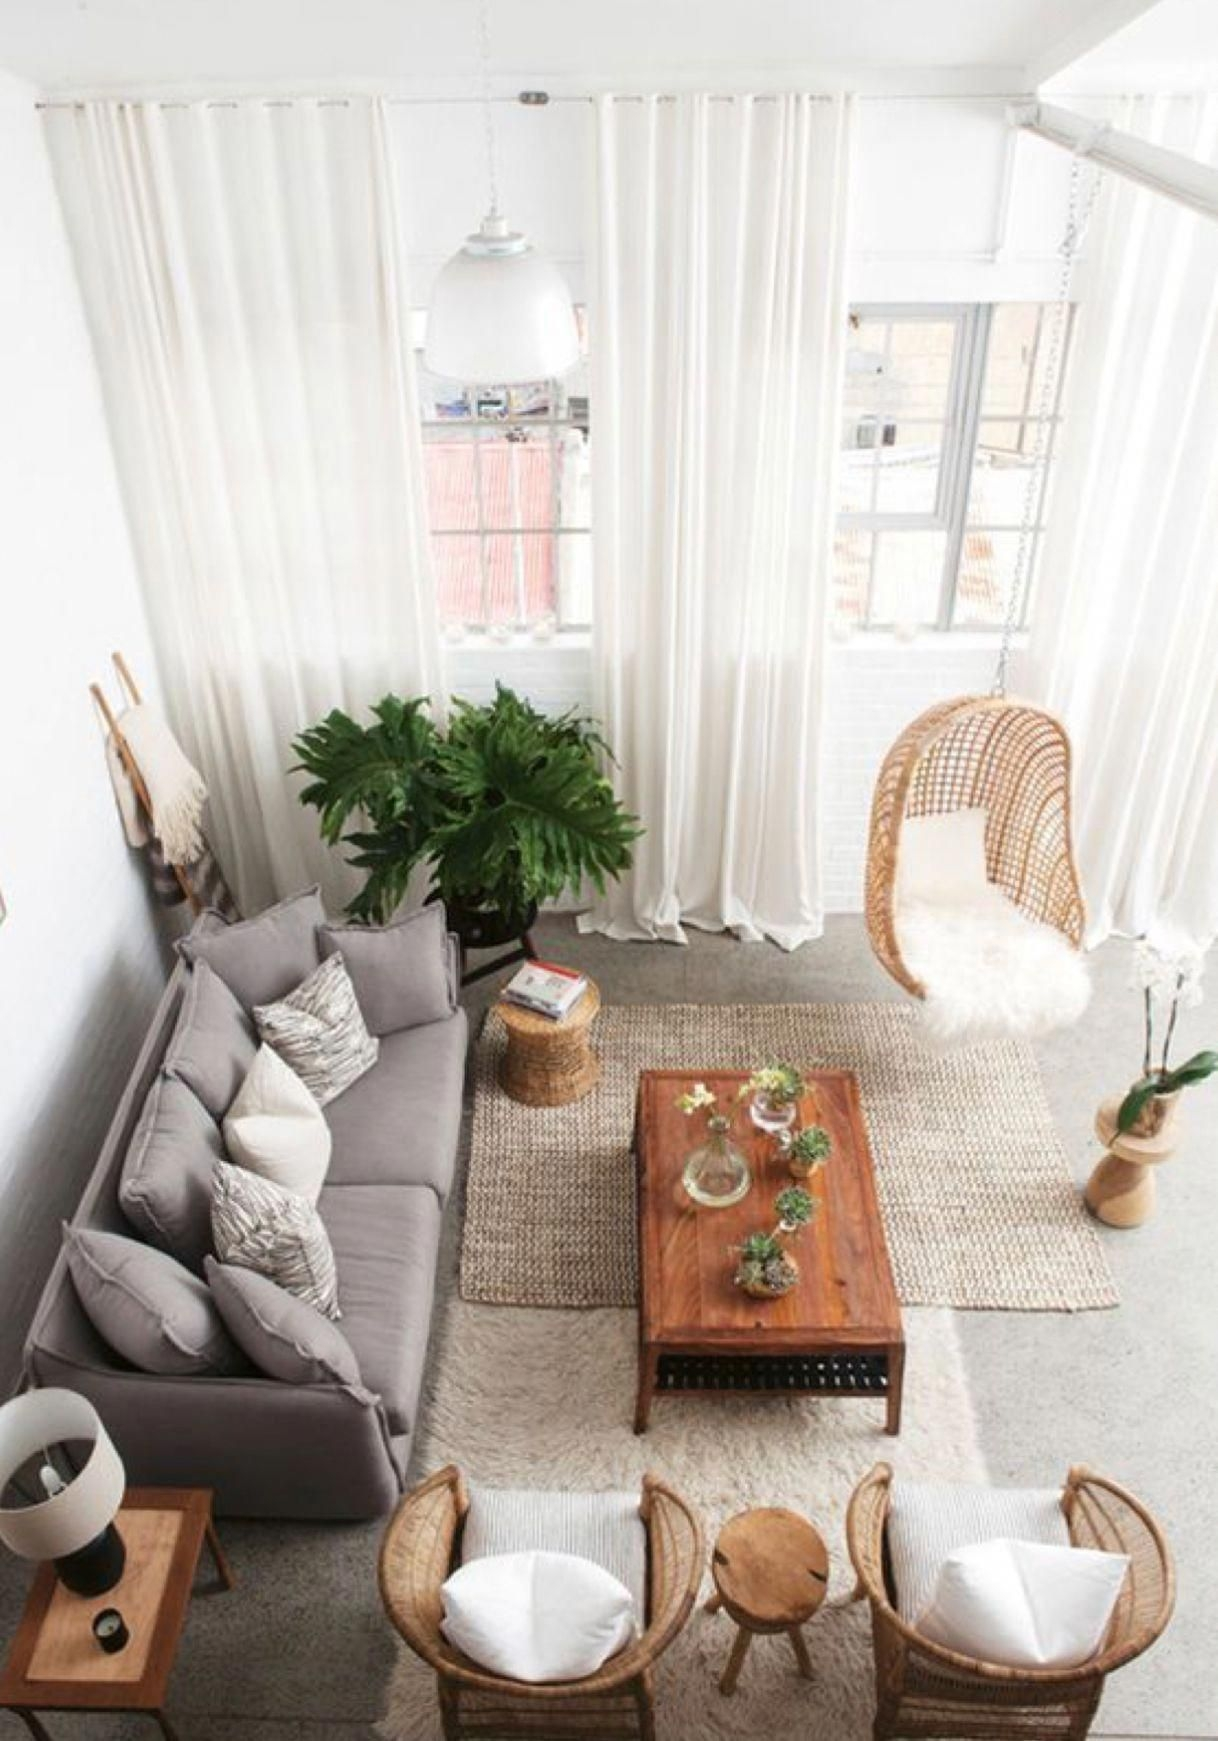 Prodigious Boho Living Room Decor On A Budget Ideas Spaces Living Room Chairs On Incredible Small Living Room Ideas Drawing Room Design Ideas On Boho Living Room Decor On A Budget Ideas Spaces Living Room Chairs